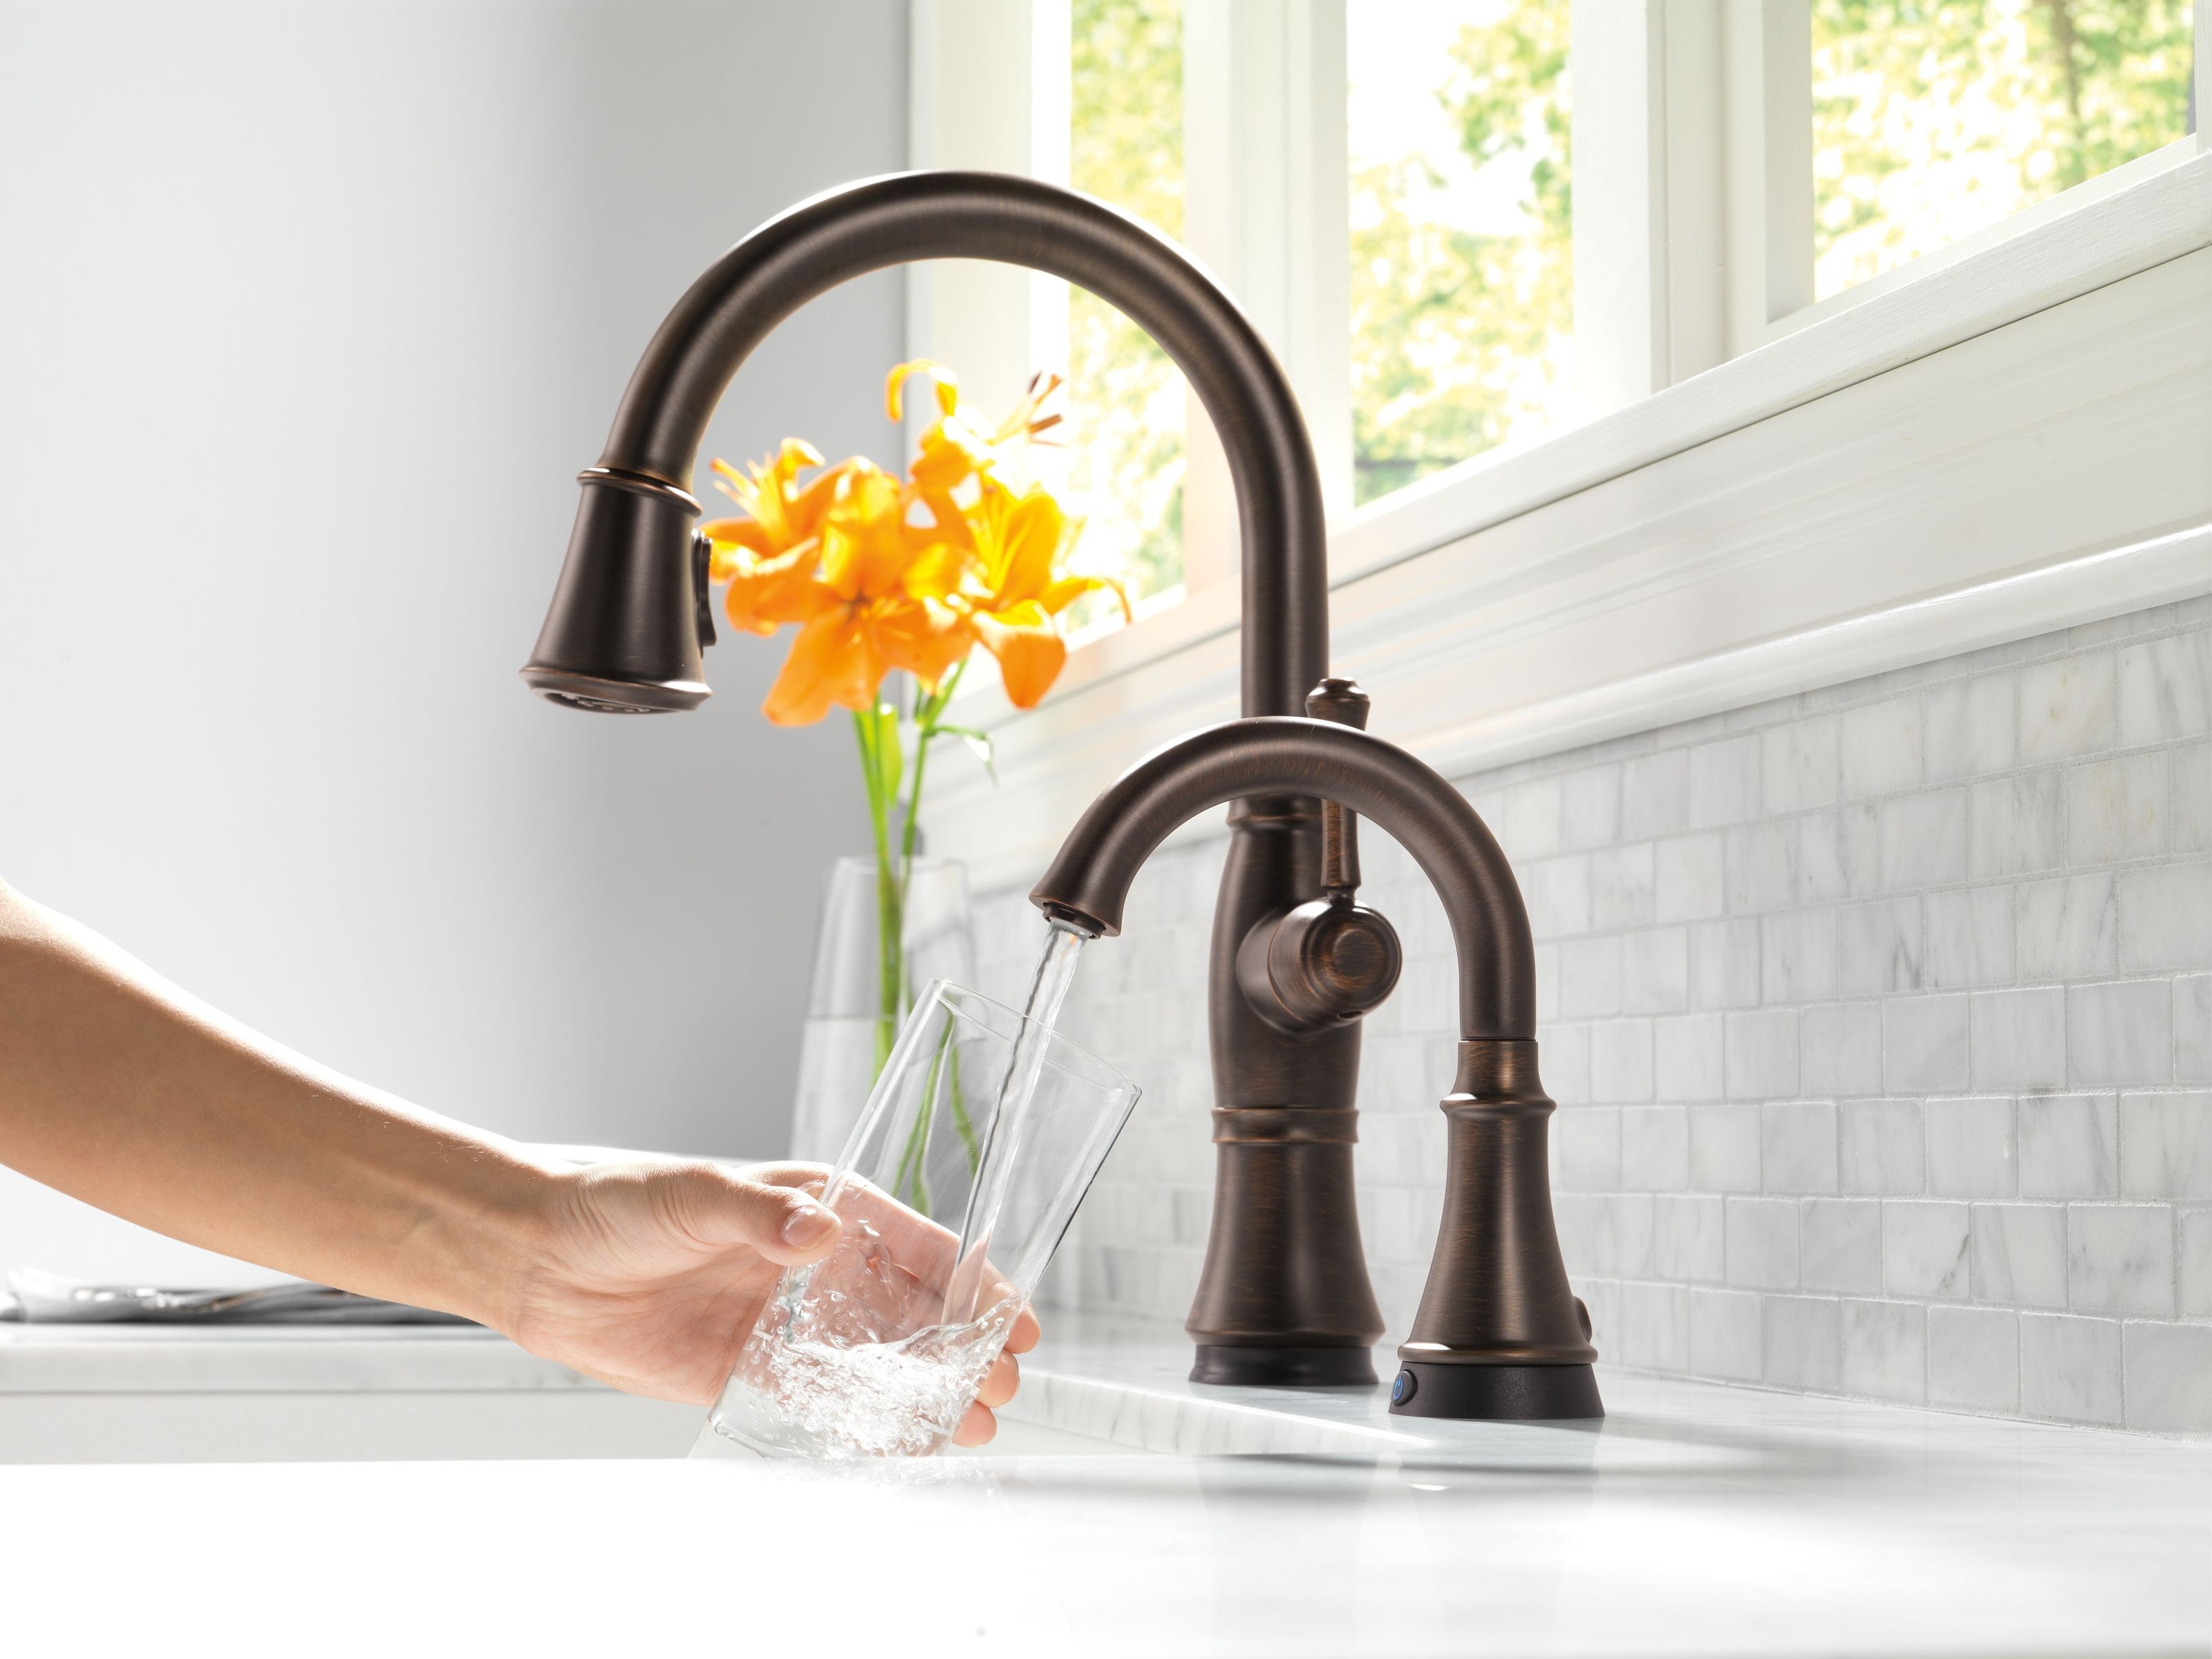 handle filtered water kitchen jenkins steel stainless commercial faucet drinking pin faucets beverage modern sink single